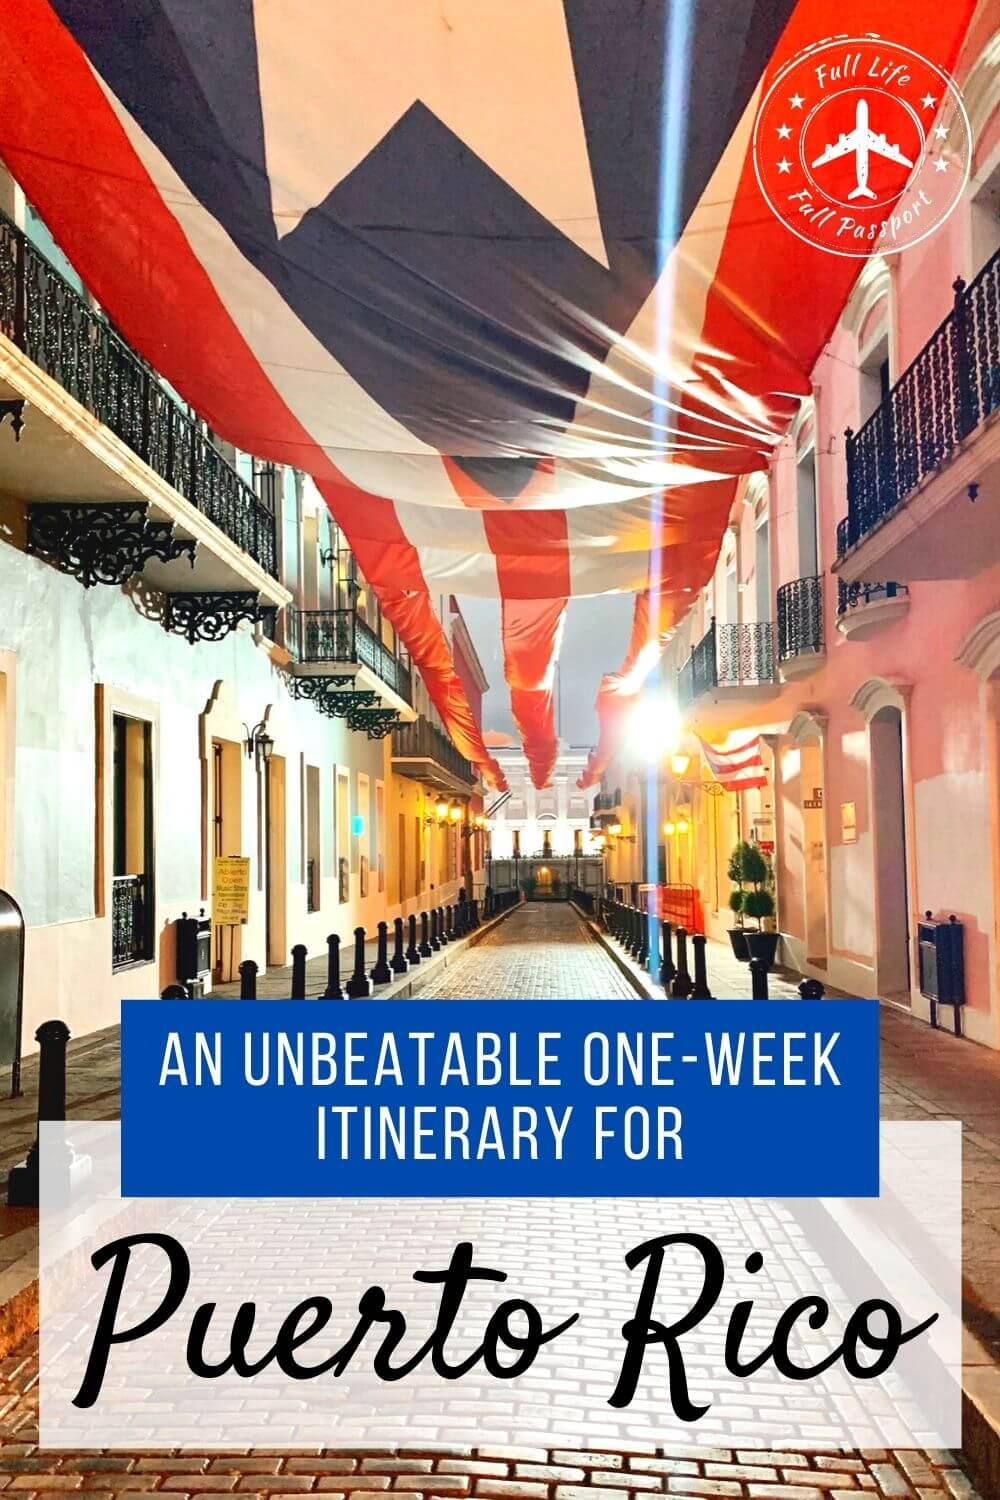 An Unbeatable One-Week Itinerary for Puerto Rico